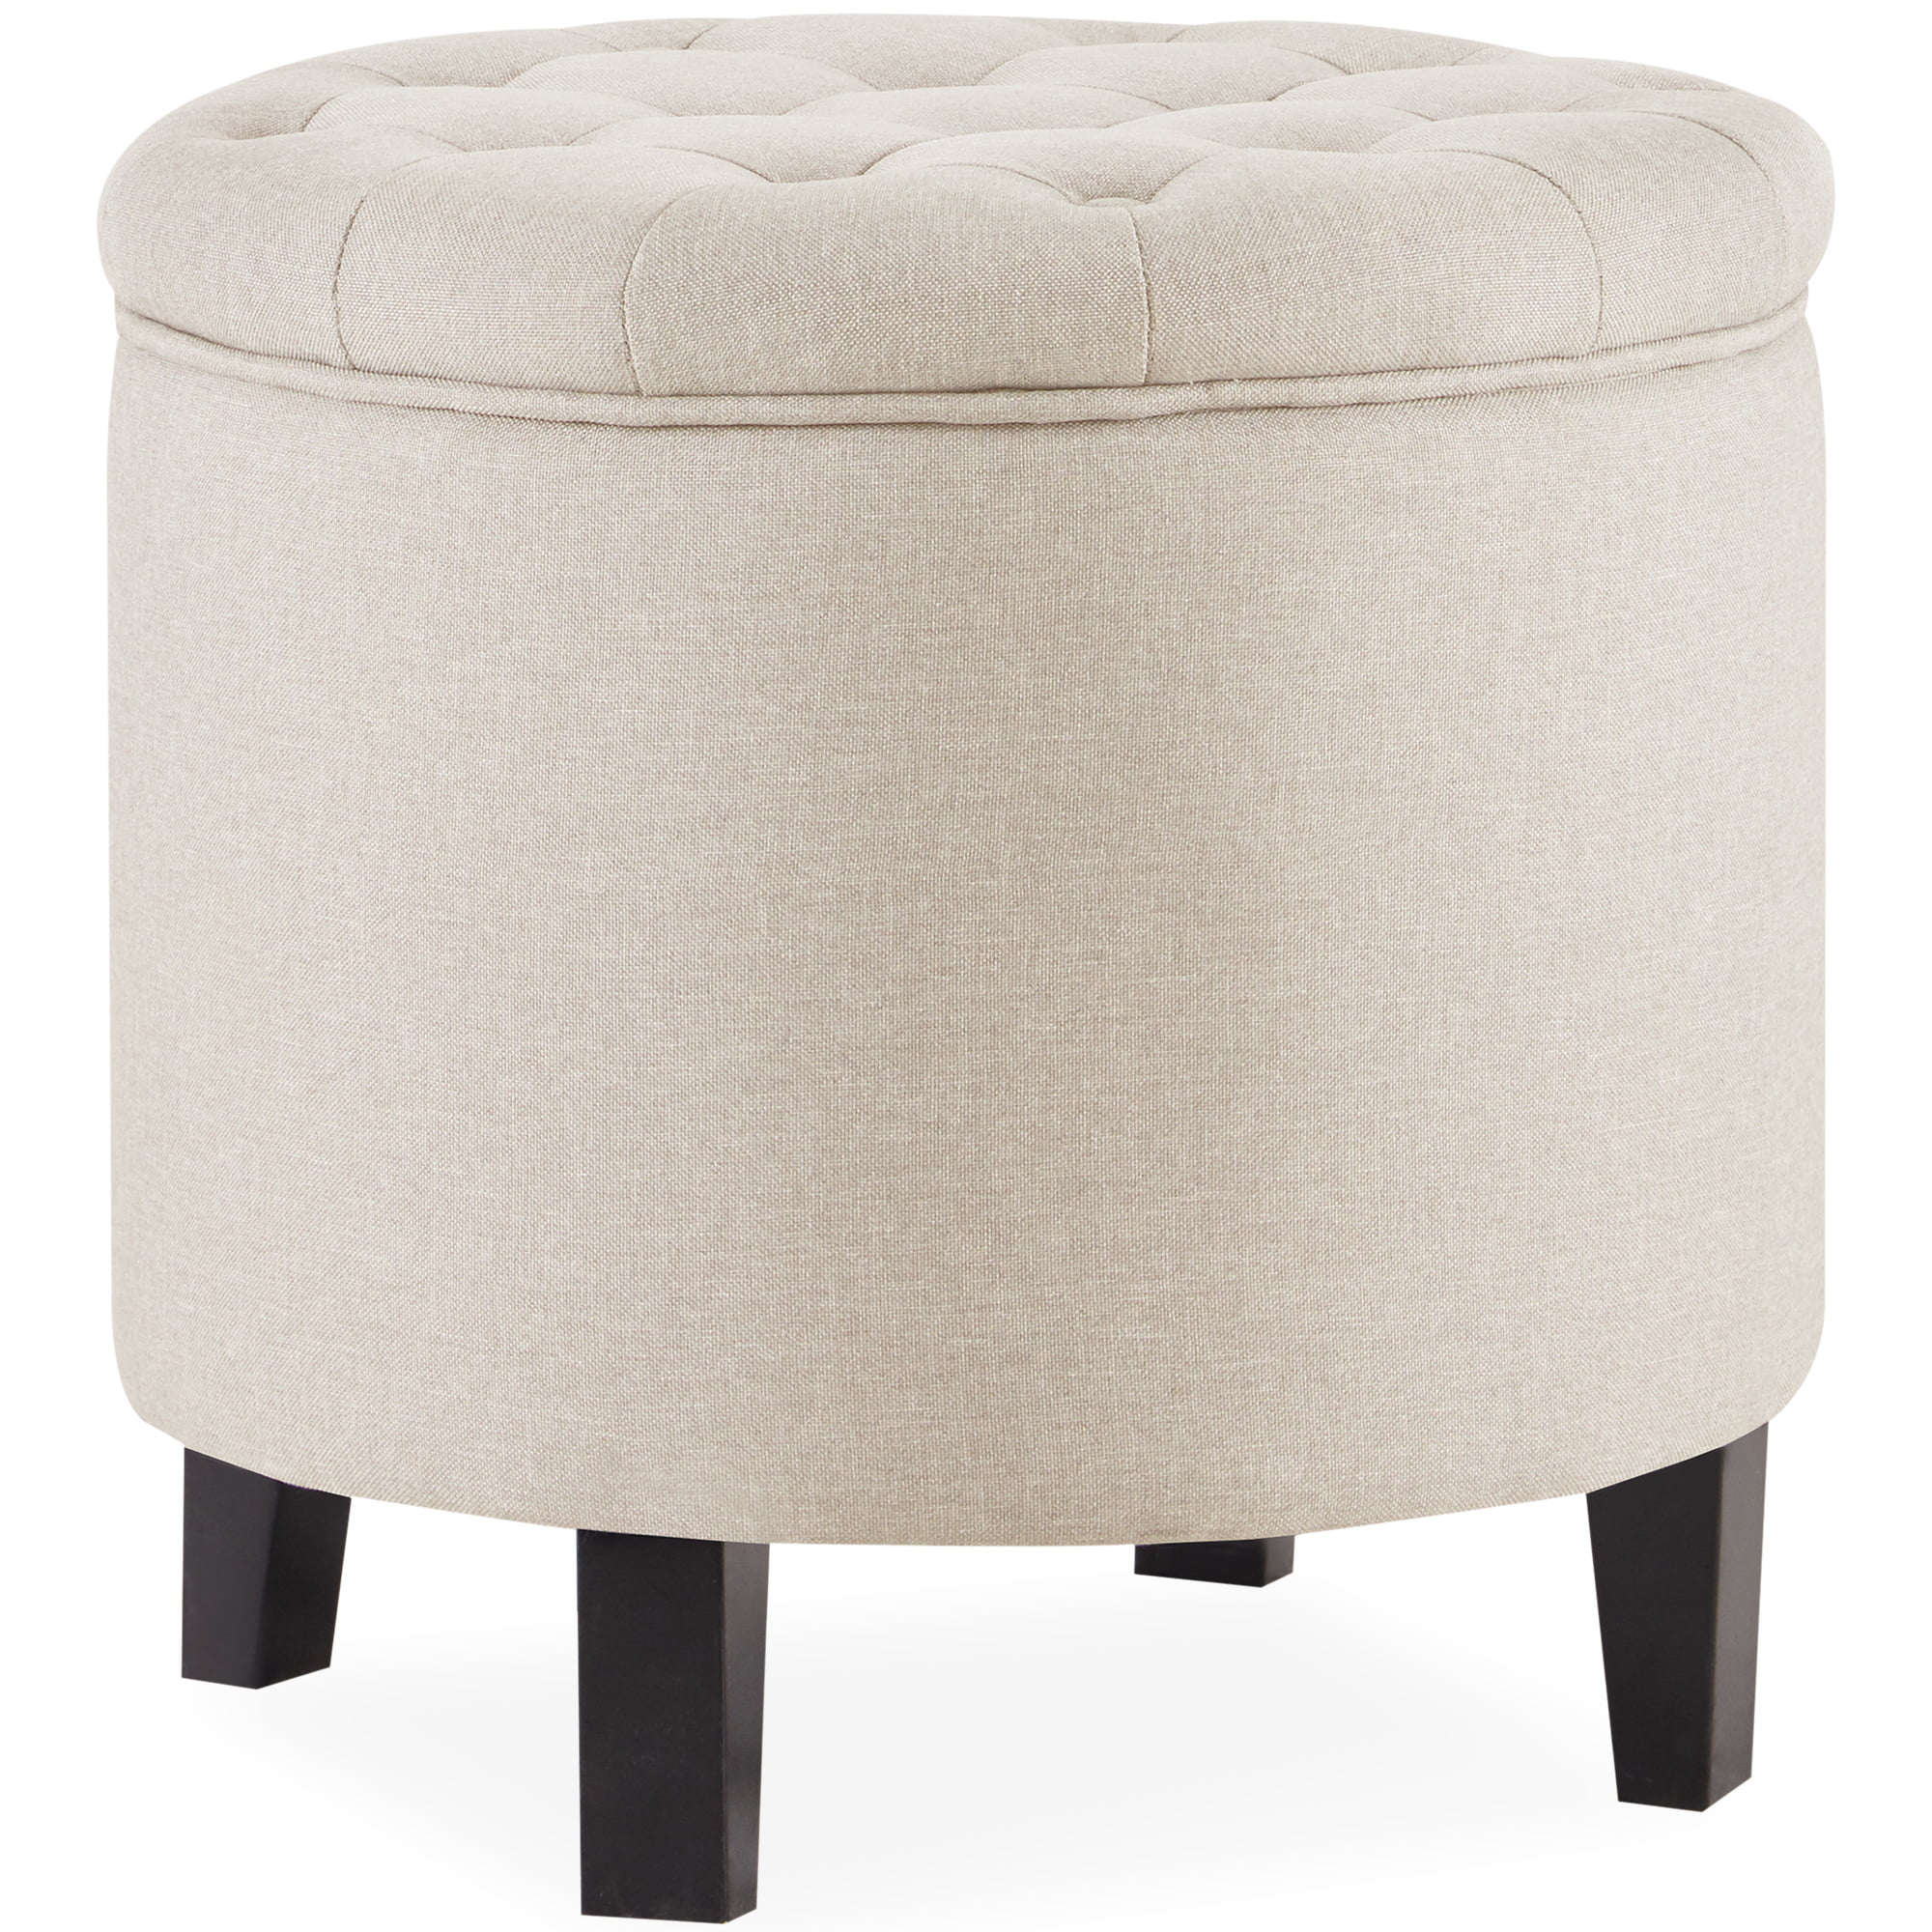 Upholstered X Large Fabric Ottoman Toy//Storage//Blanket Box Coffee Table Pouffe